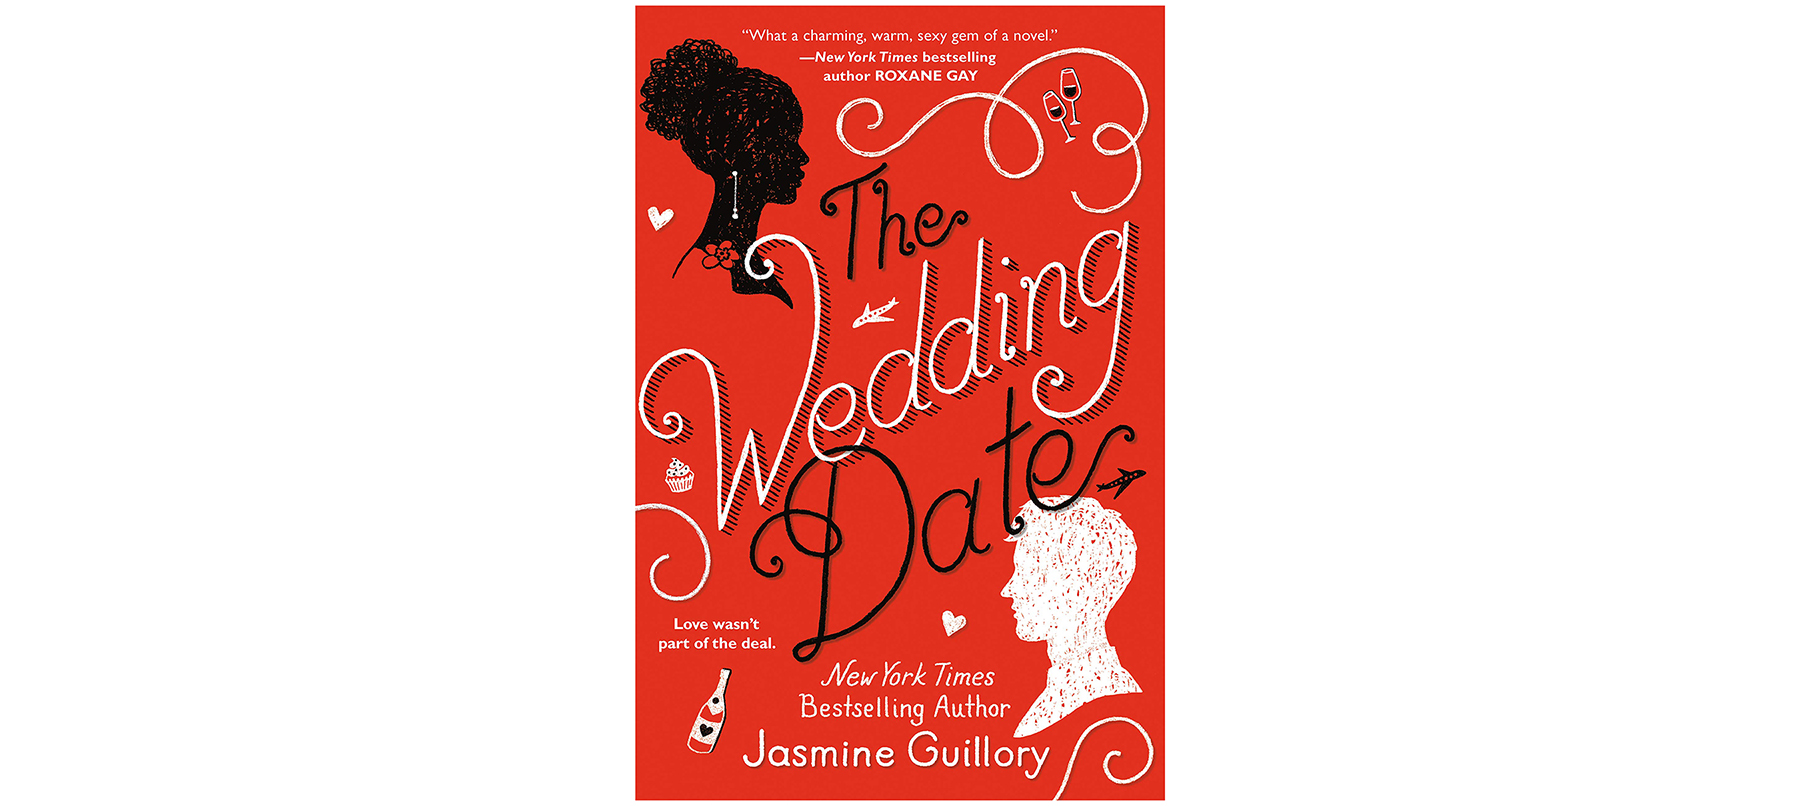 Cover of The Wedding Date, by Jasmine Guillory